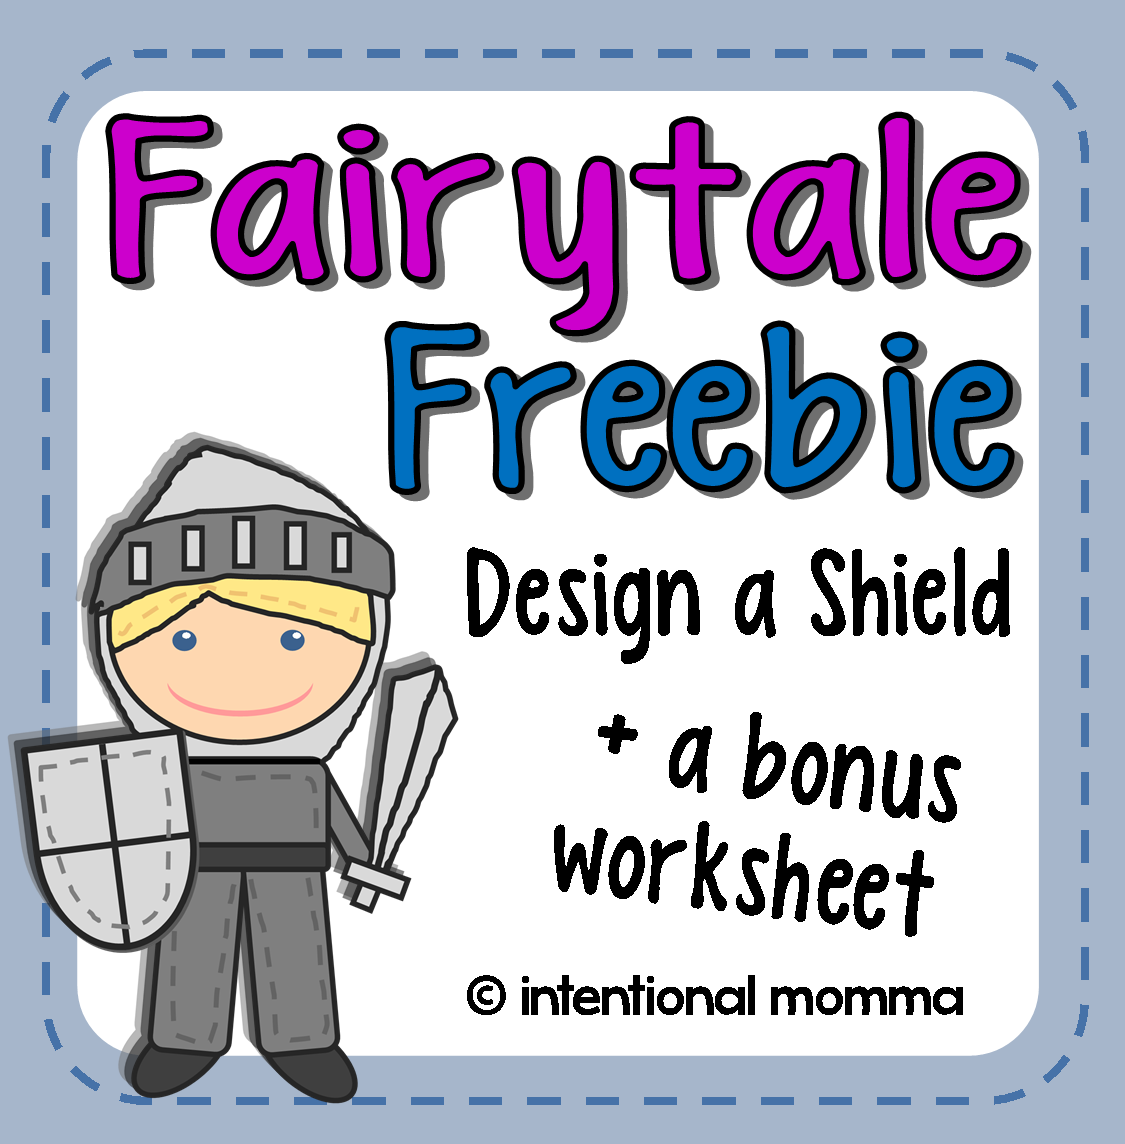 Fairytale Freebie Free Printable Shield Worksheets For